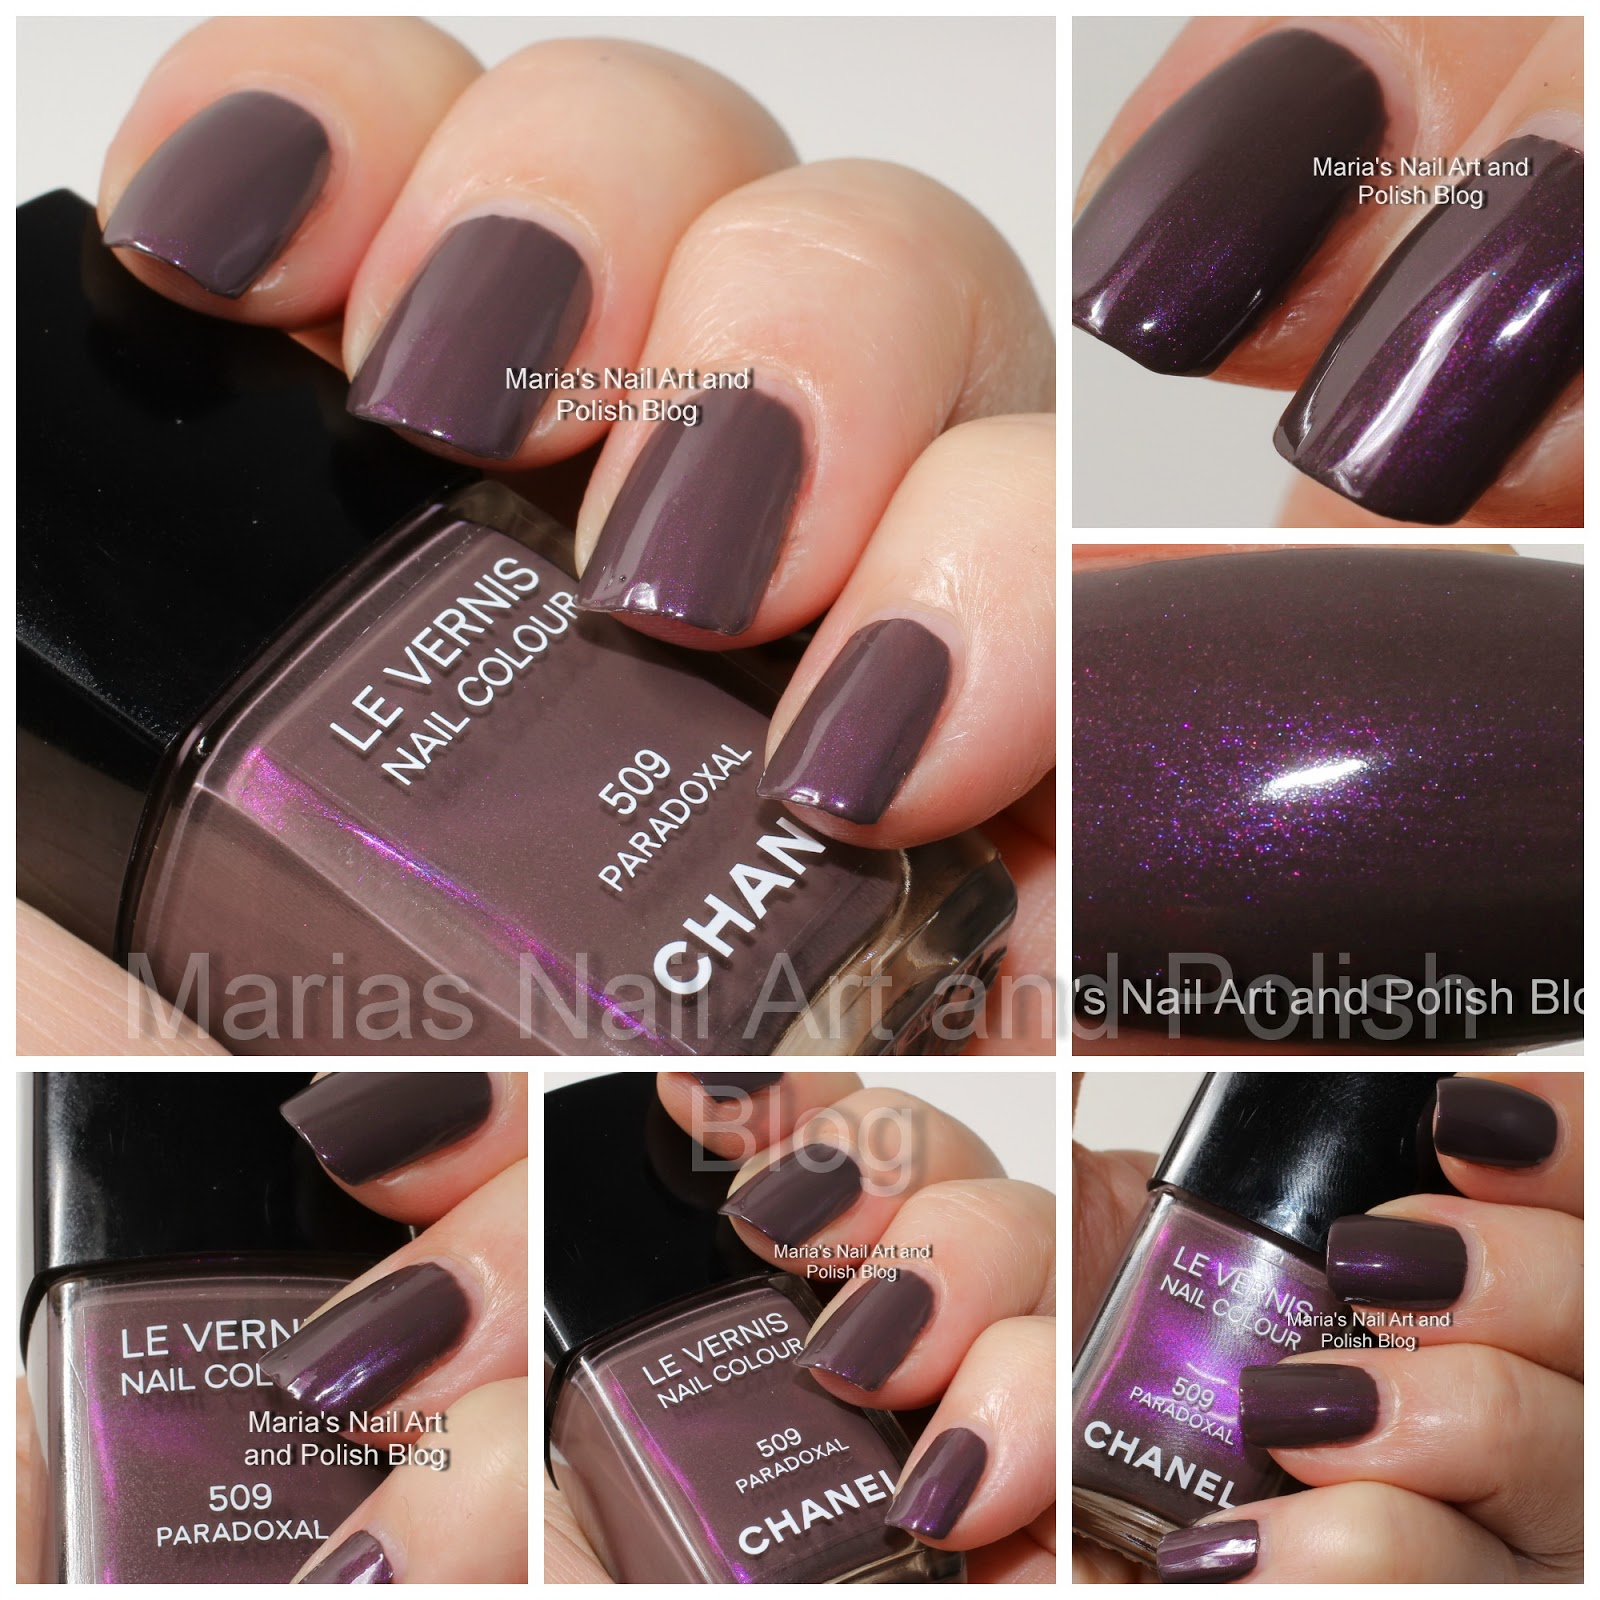 Prettyfulz Fall Nail Art Design 2011: Marias Nail Art And Polish Blog: Chanel Paradoxal 509